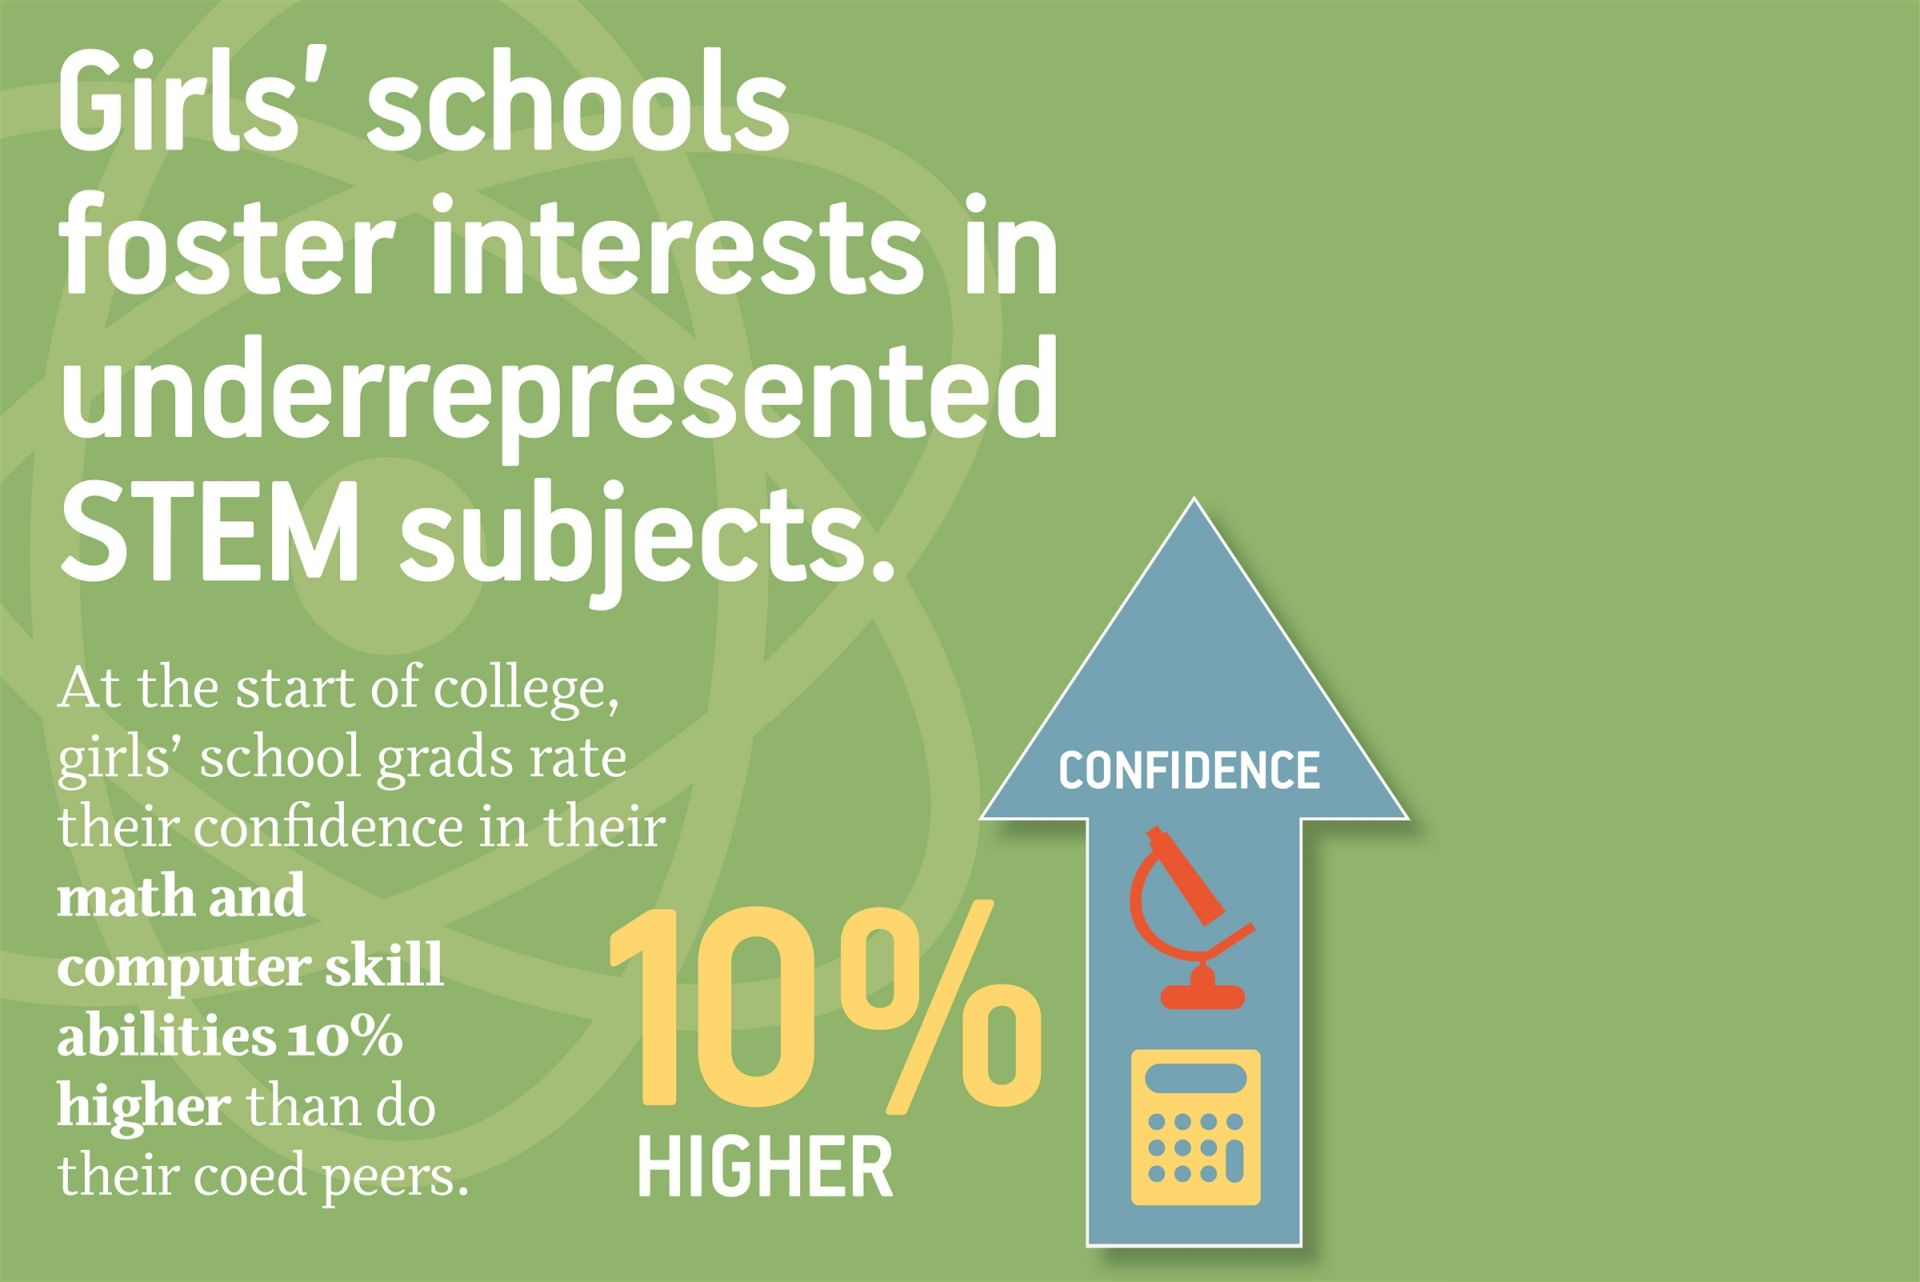 At the start of college, girls' school grads rate their confidence in their math and computer skill abilities 10% higher than do their coed peers.